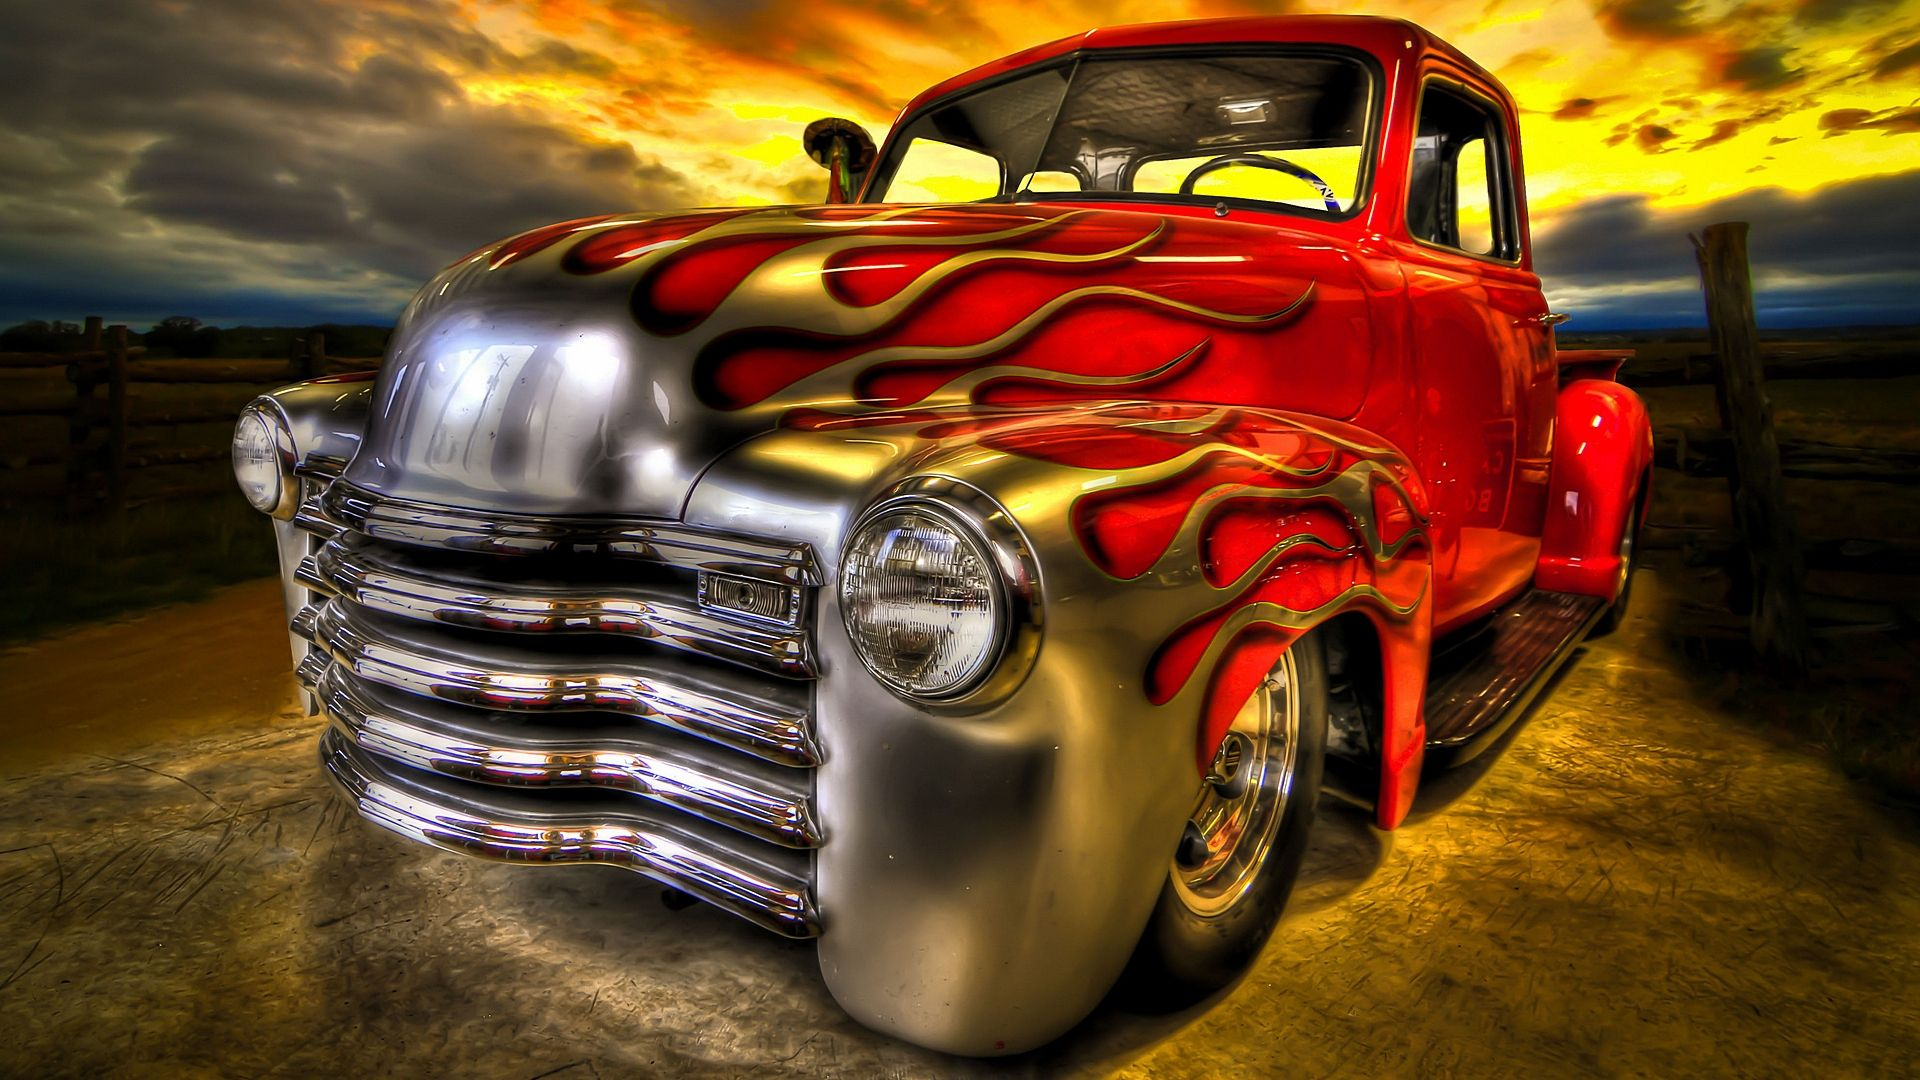 Red car with flames of fire hdr creme - 1955 Chevy 3100 Desktop Wallpaper 1600x1200 Trucks Etc Desktop Wp S Pinterest Chevy Classic Chevy Trucks And Cars